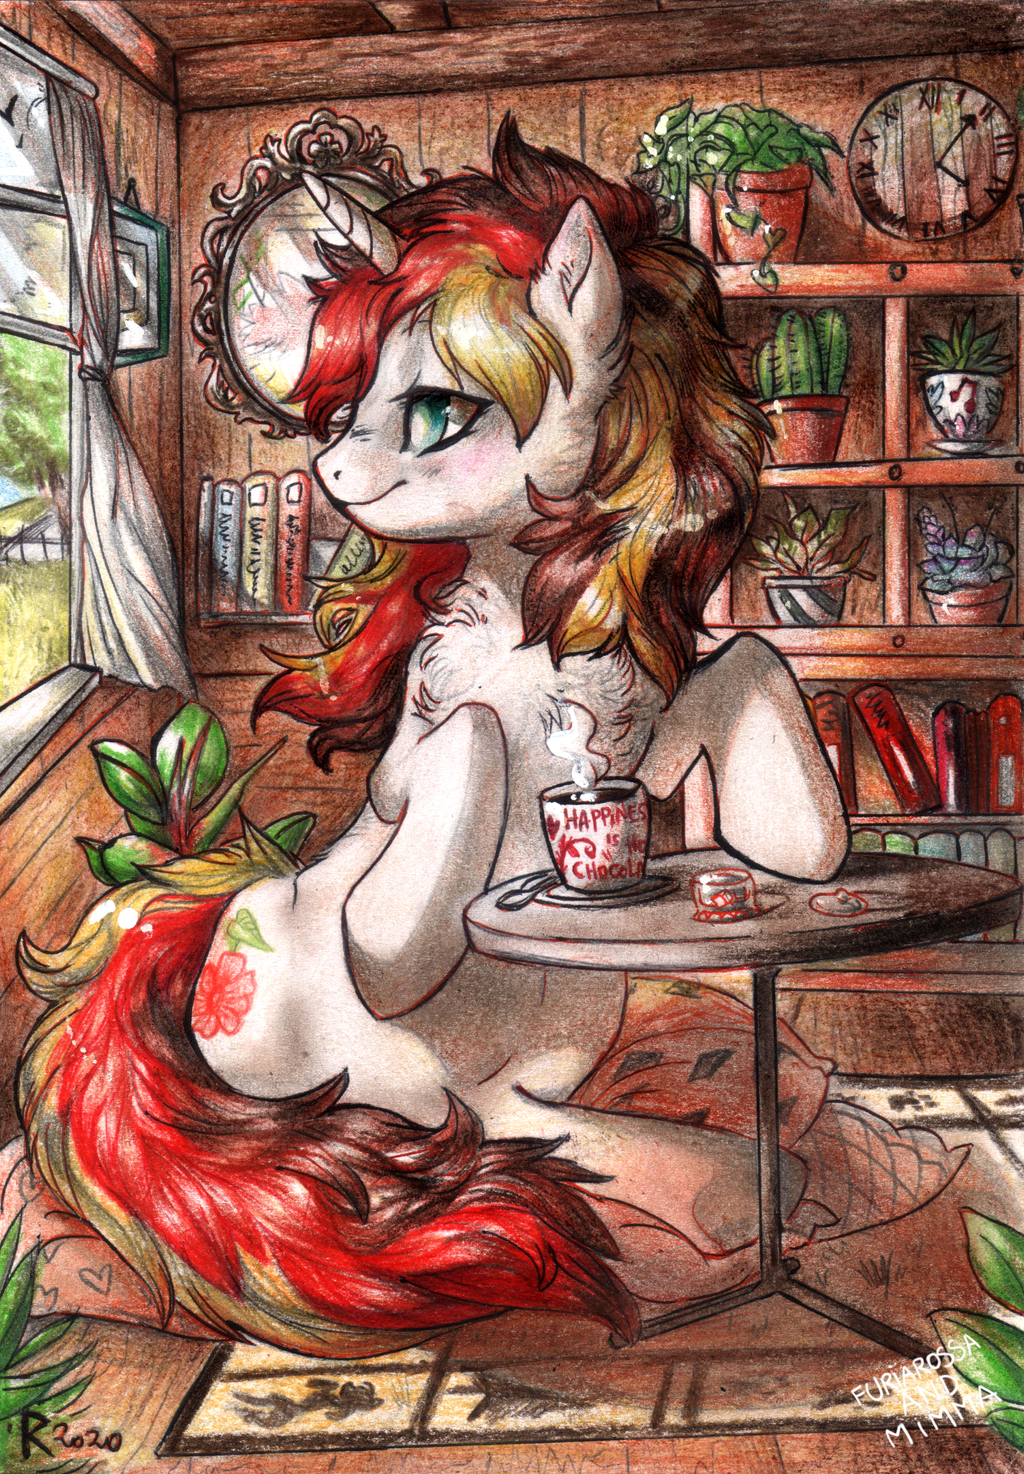 Commission - Happiness is... hot chocolate!